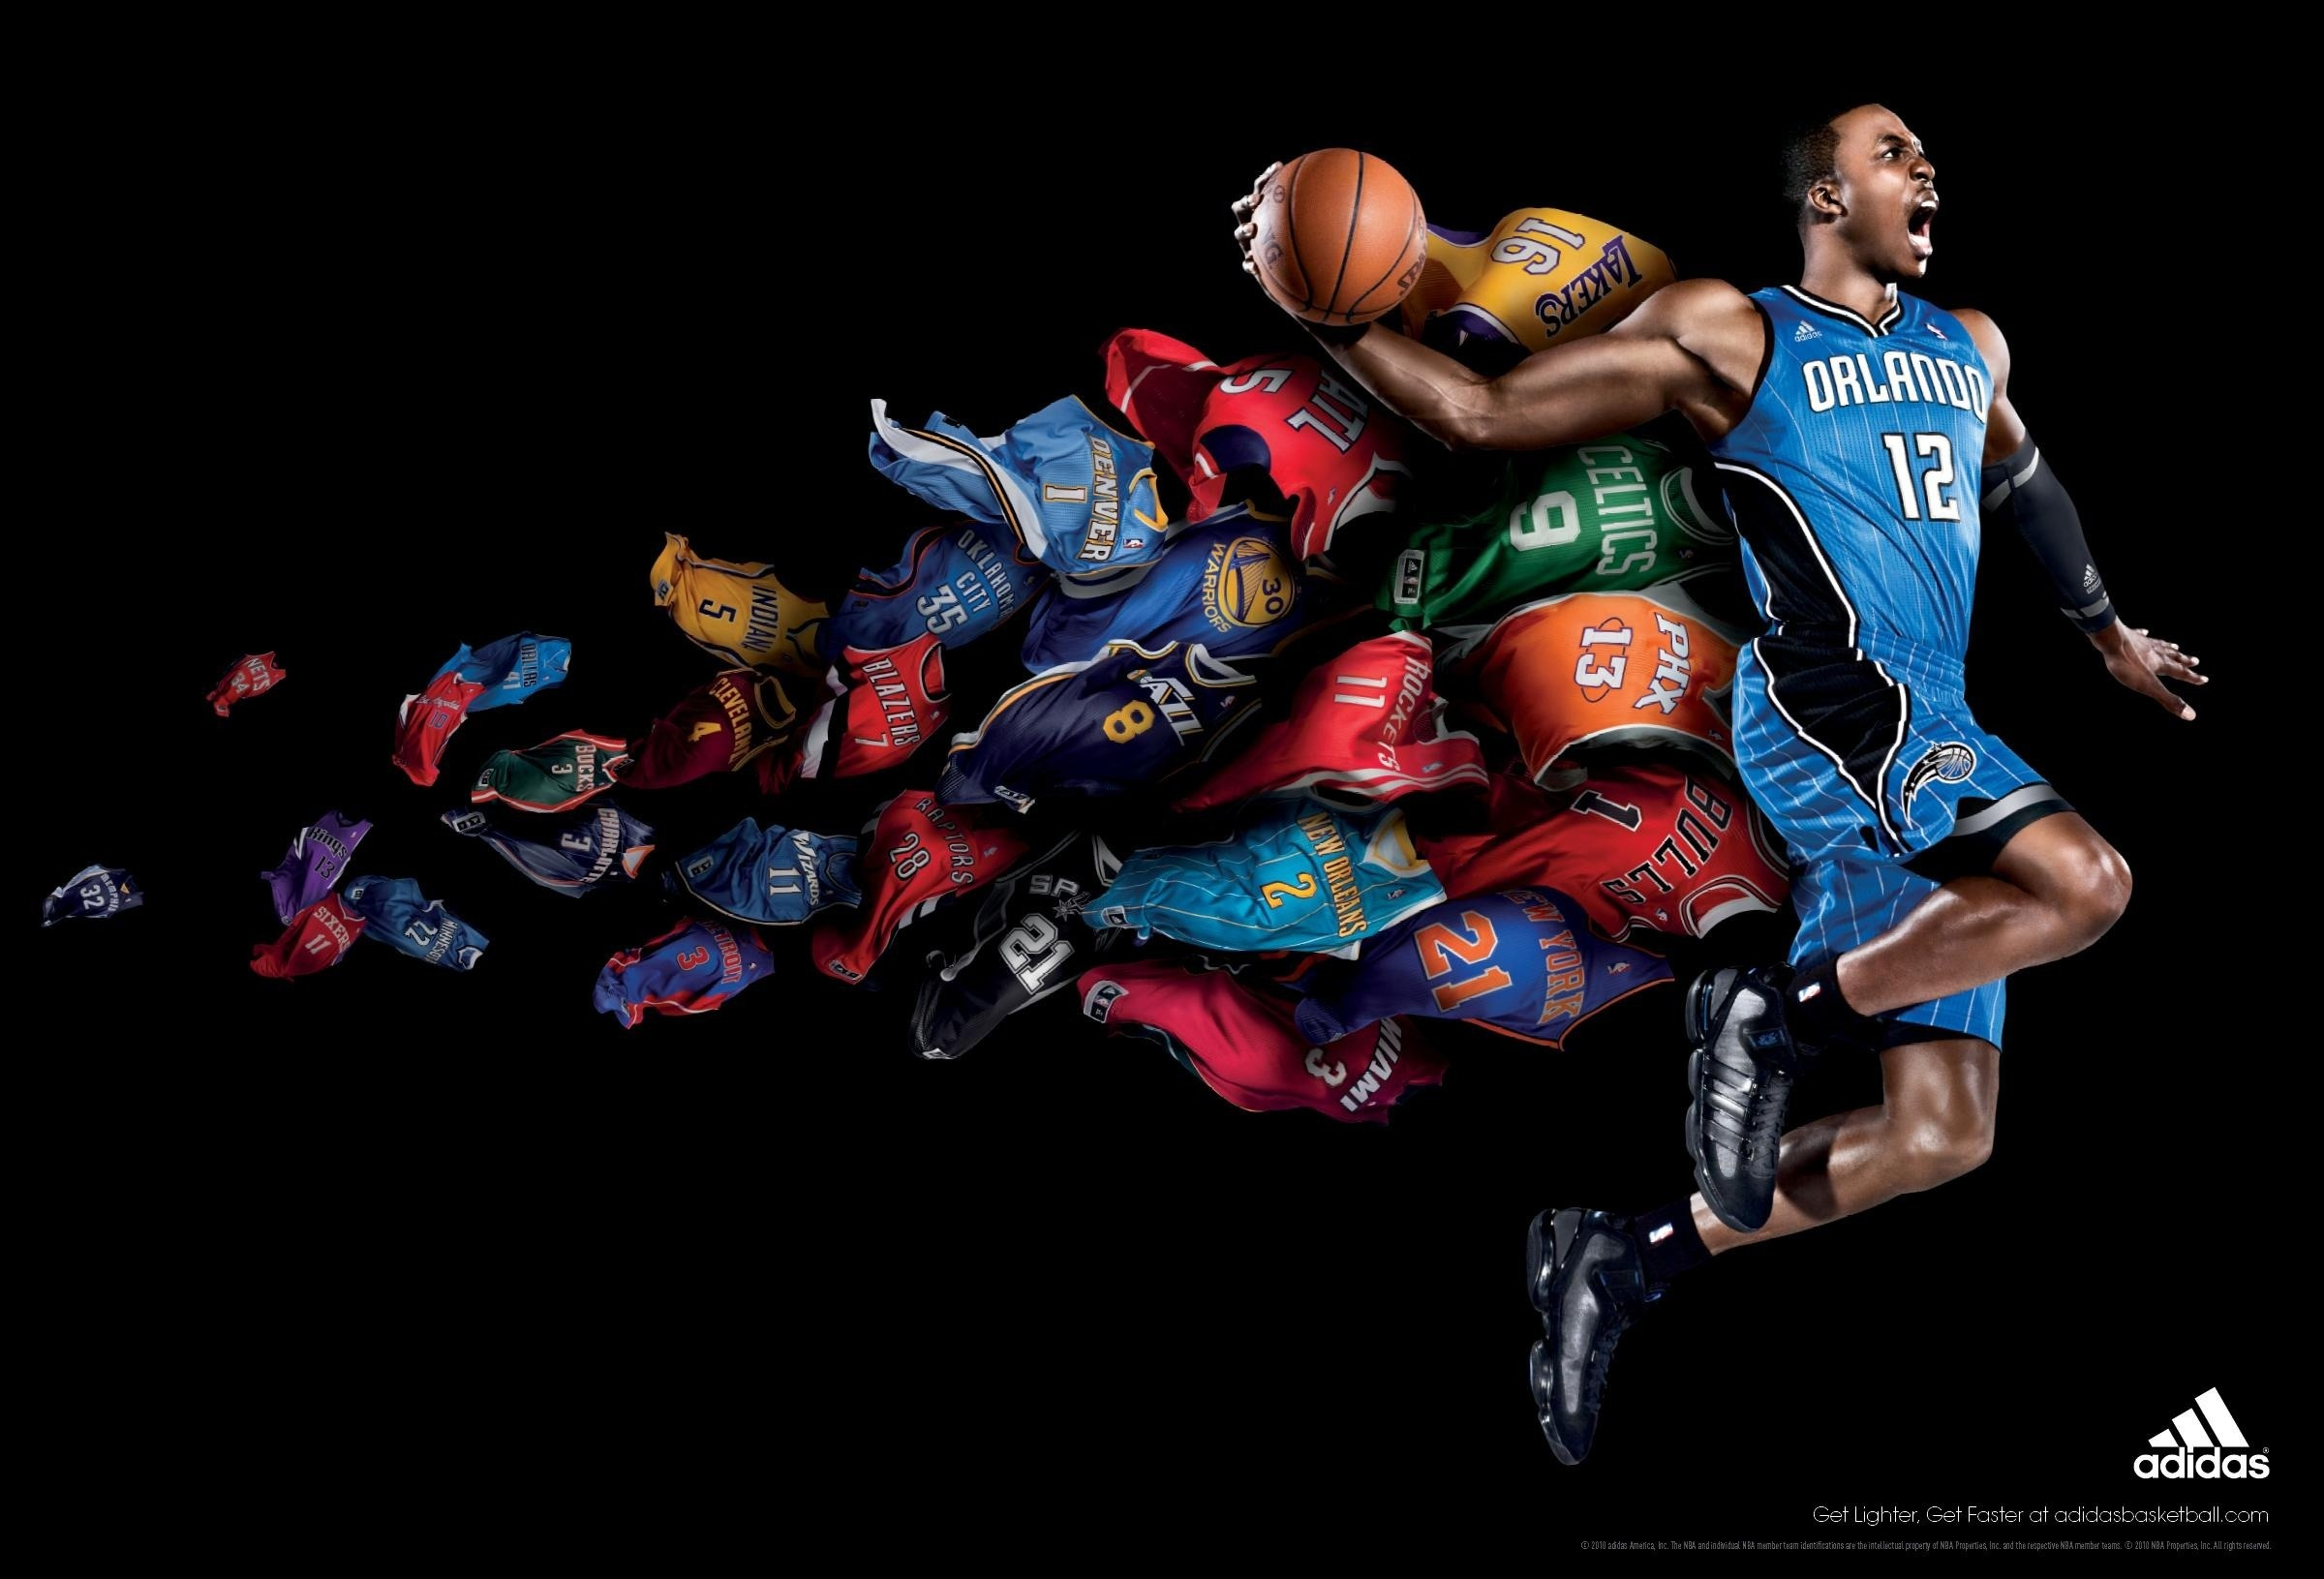 Basketball Wallpapers HD 2015 The Art Mad Wallpapers 2400x1631